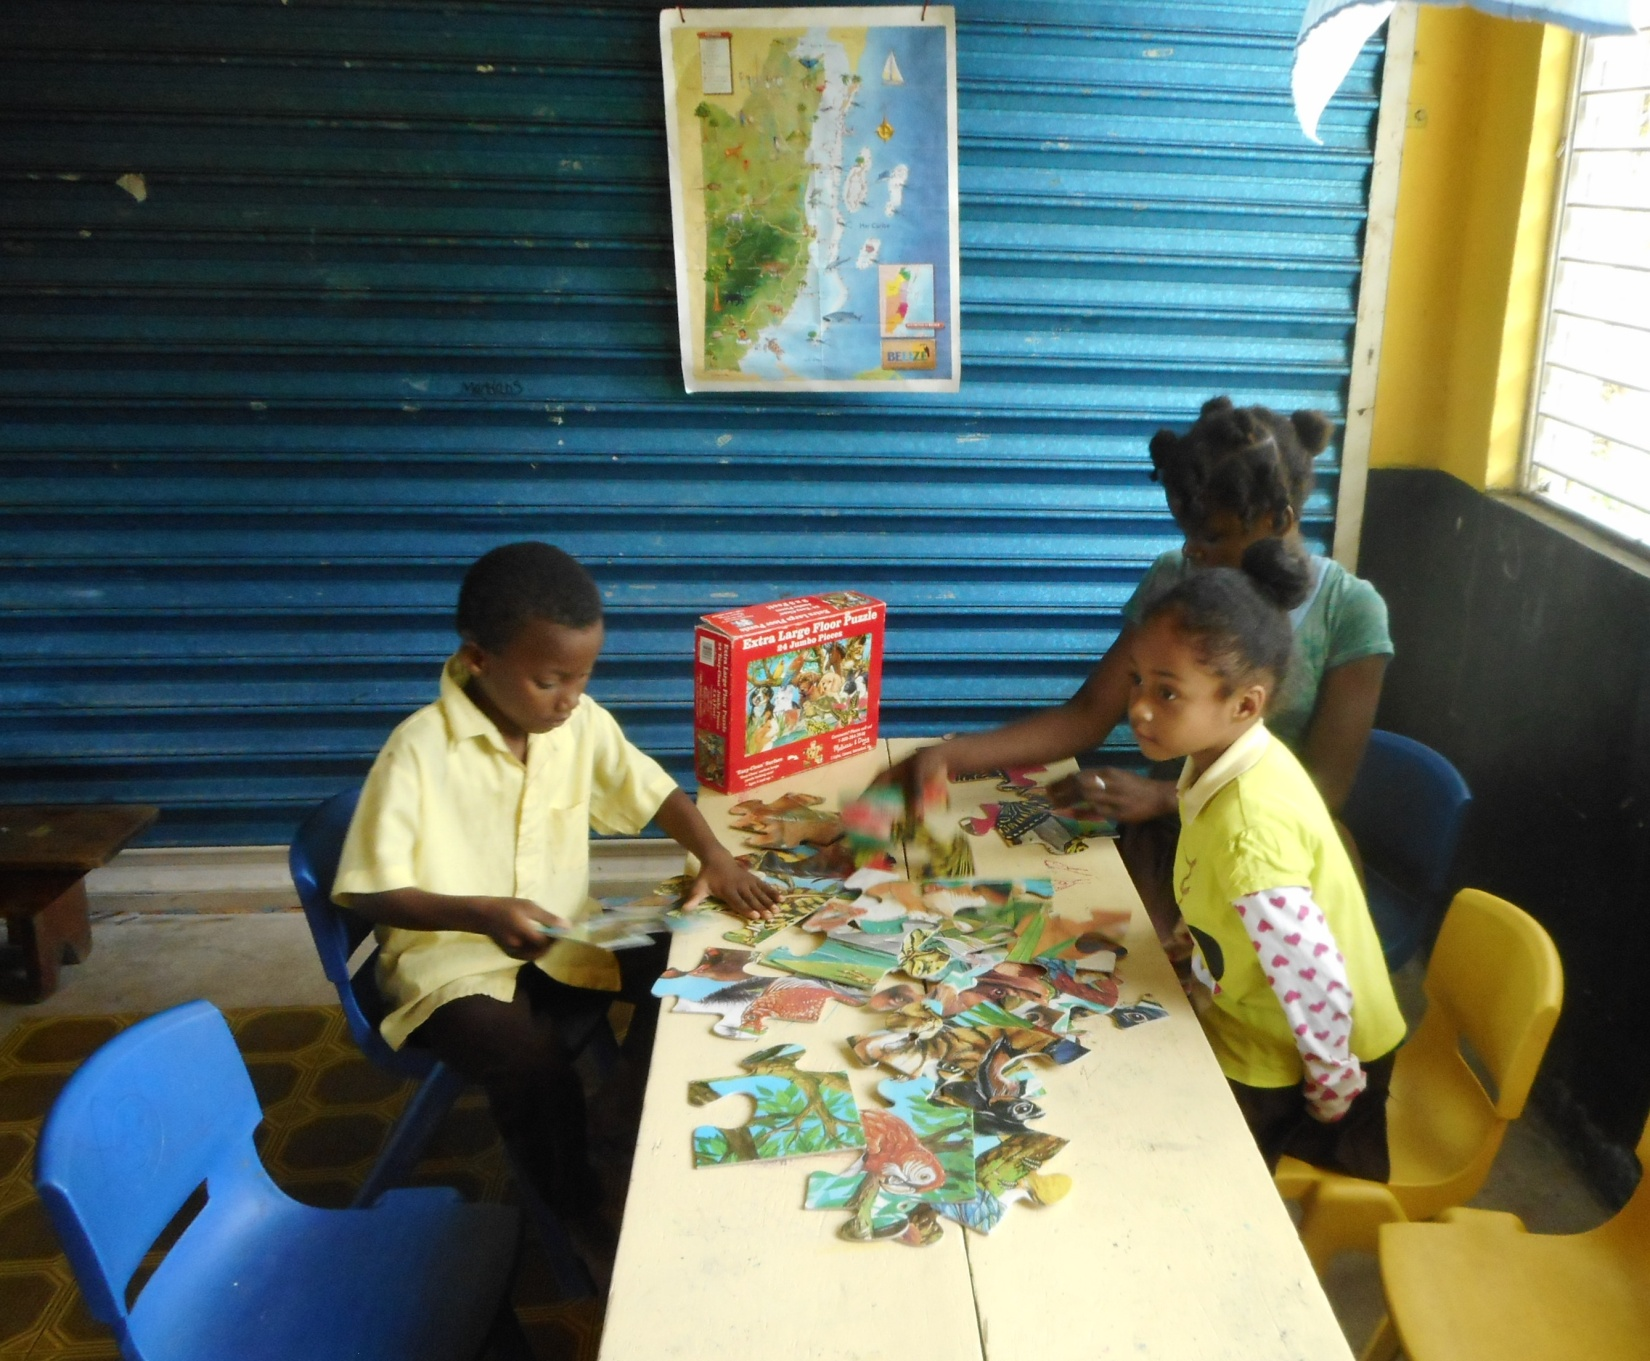 Giant floor puzzles are one of the best learning tools we can send because they involve/develop the students' skills in many ways.